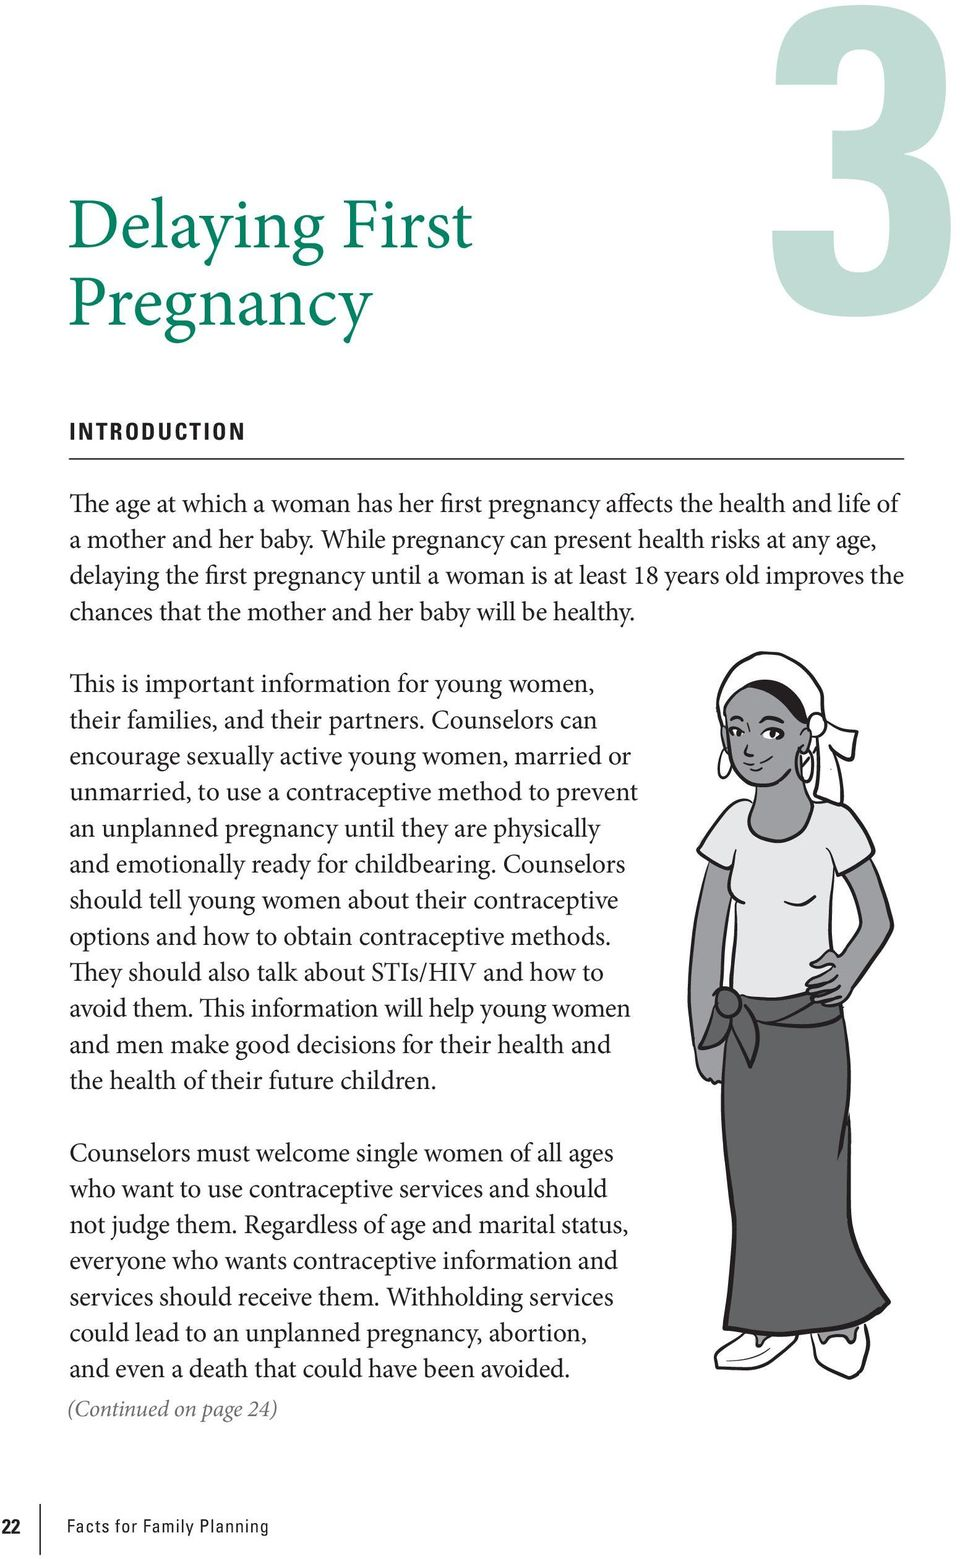 This is important information for young women, their families, and their partners.